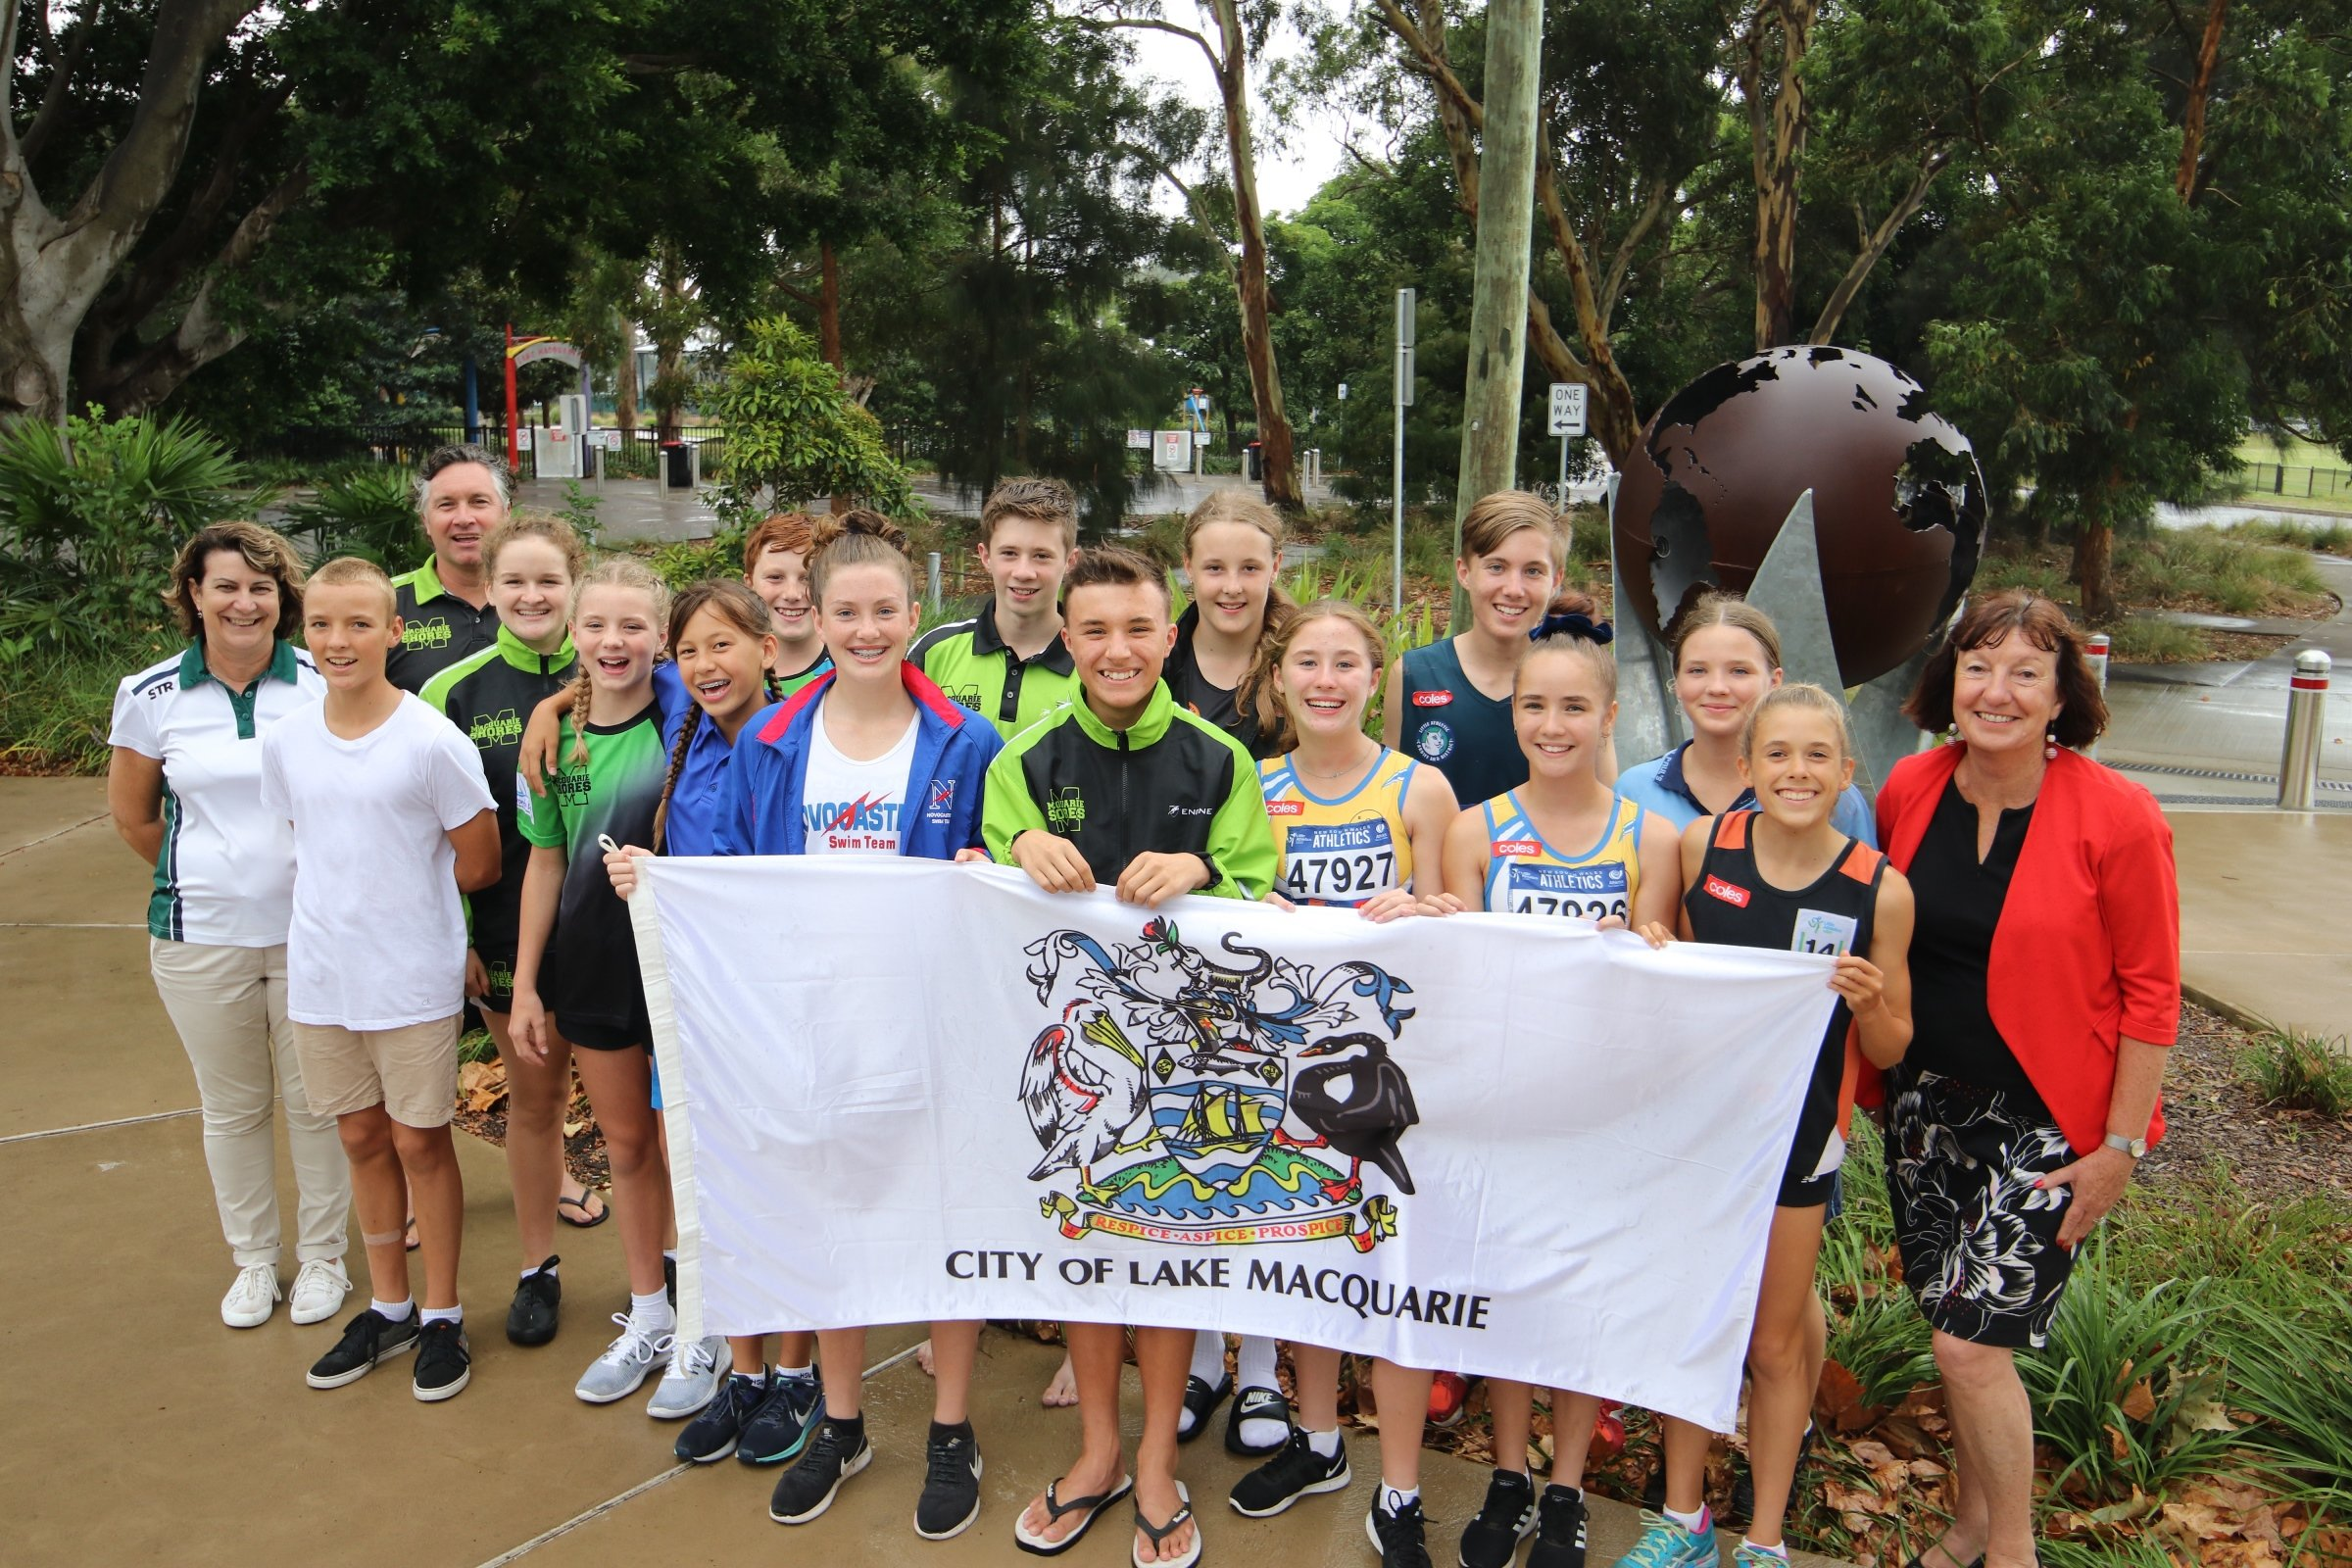 Fourteen local swimmers and track and field athletes will represent the City of Lake Macquarie at the International Children's Games (ICG) in Ufa, Russia from 9 to 13 July 2019.